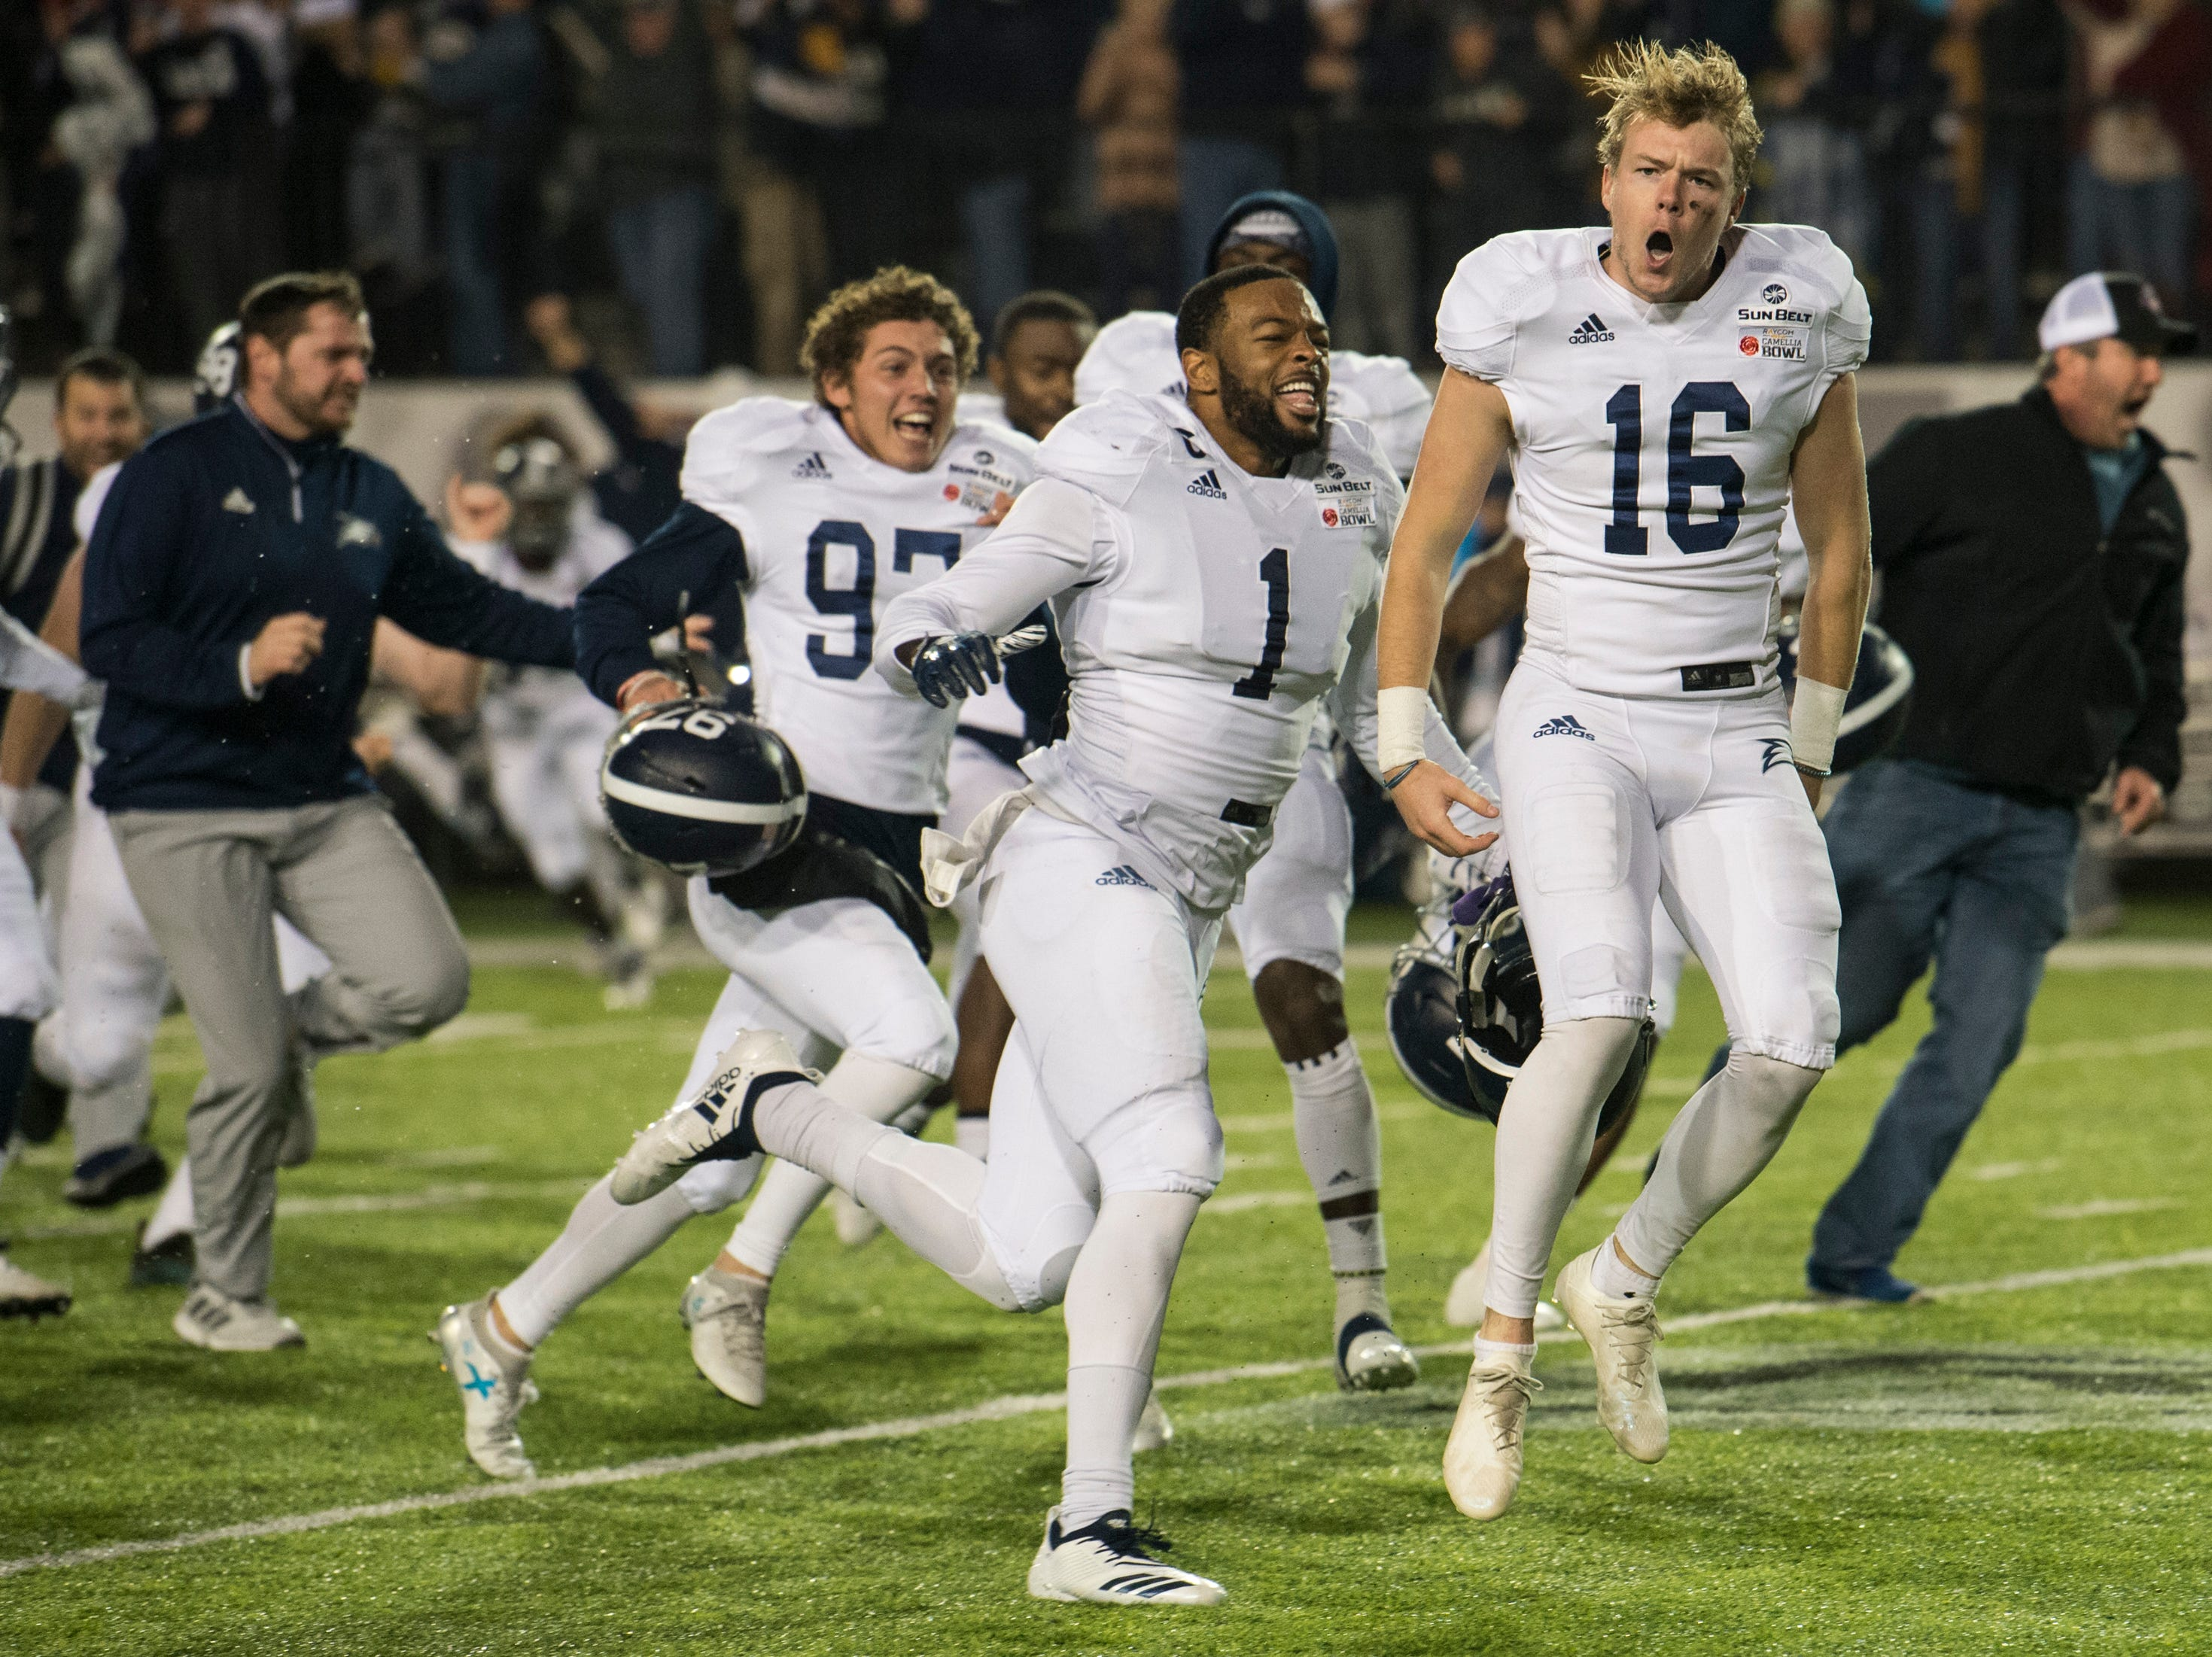 Georgia Southern placekicker Tyler Bass (16) celebrates after kicking the game winning field goal during the Camellia Bowl at Cramton Bowl in Montgomery, Ala., on Saturday, Dec. 15, 2018. Georgia Southern defeated Eastern Michigan 23-21.